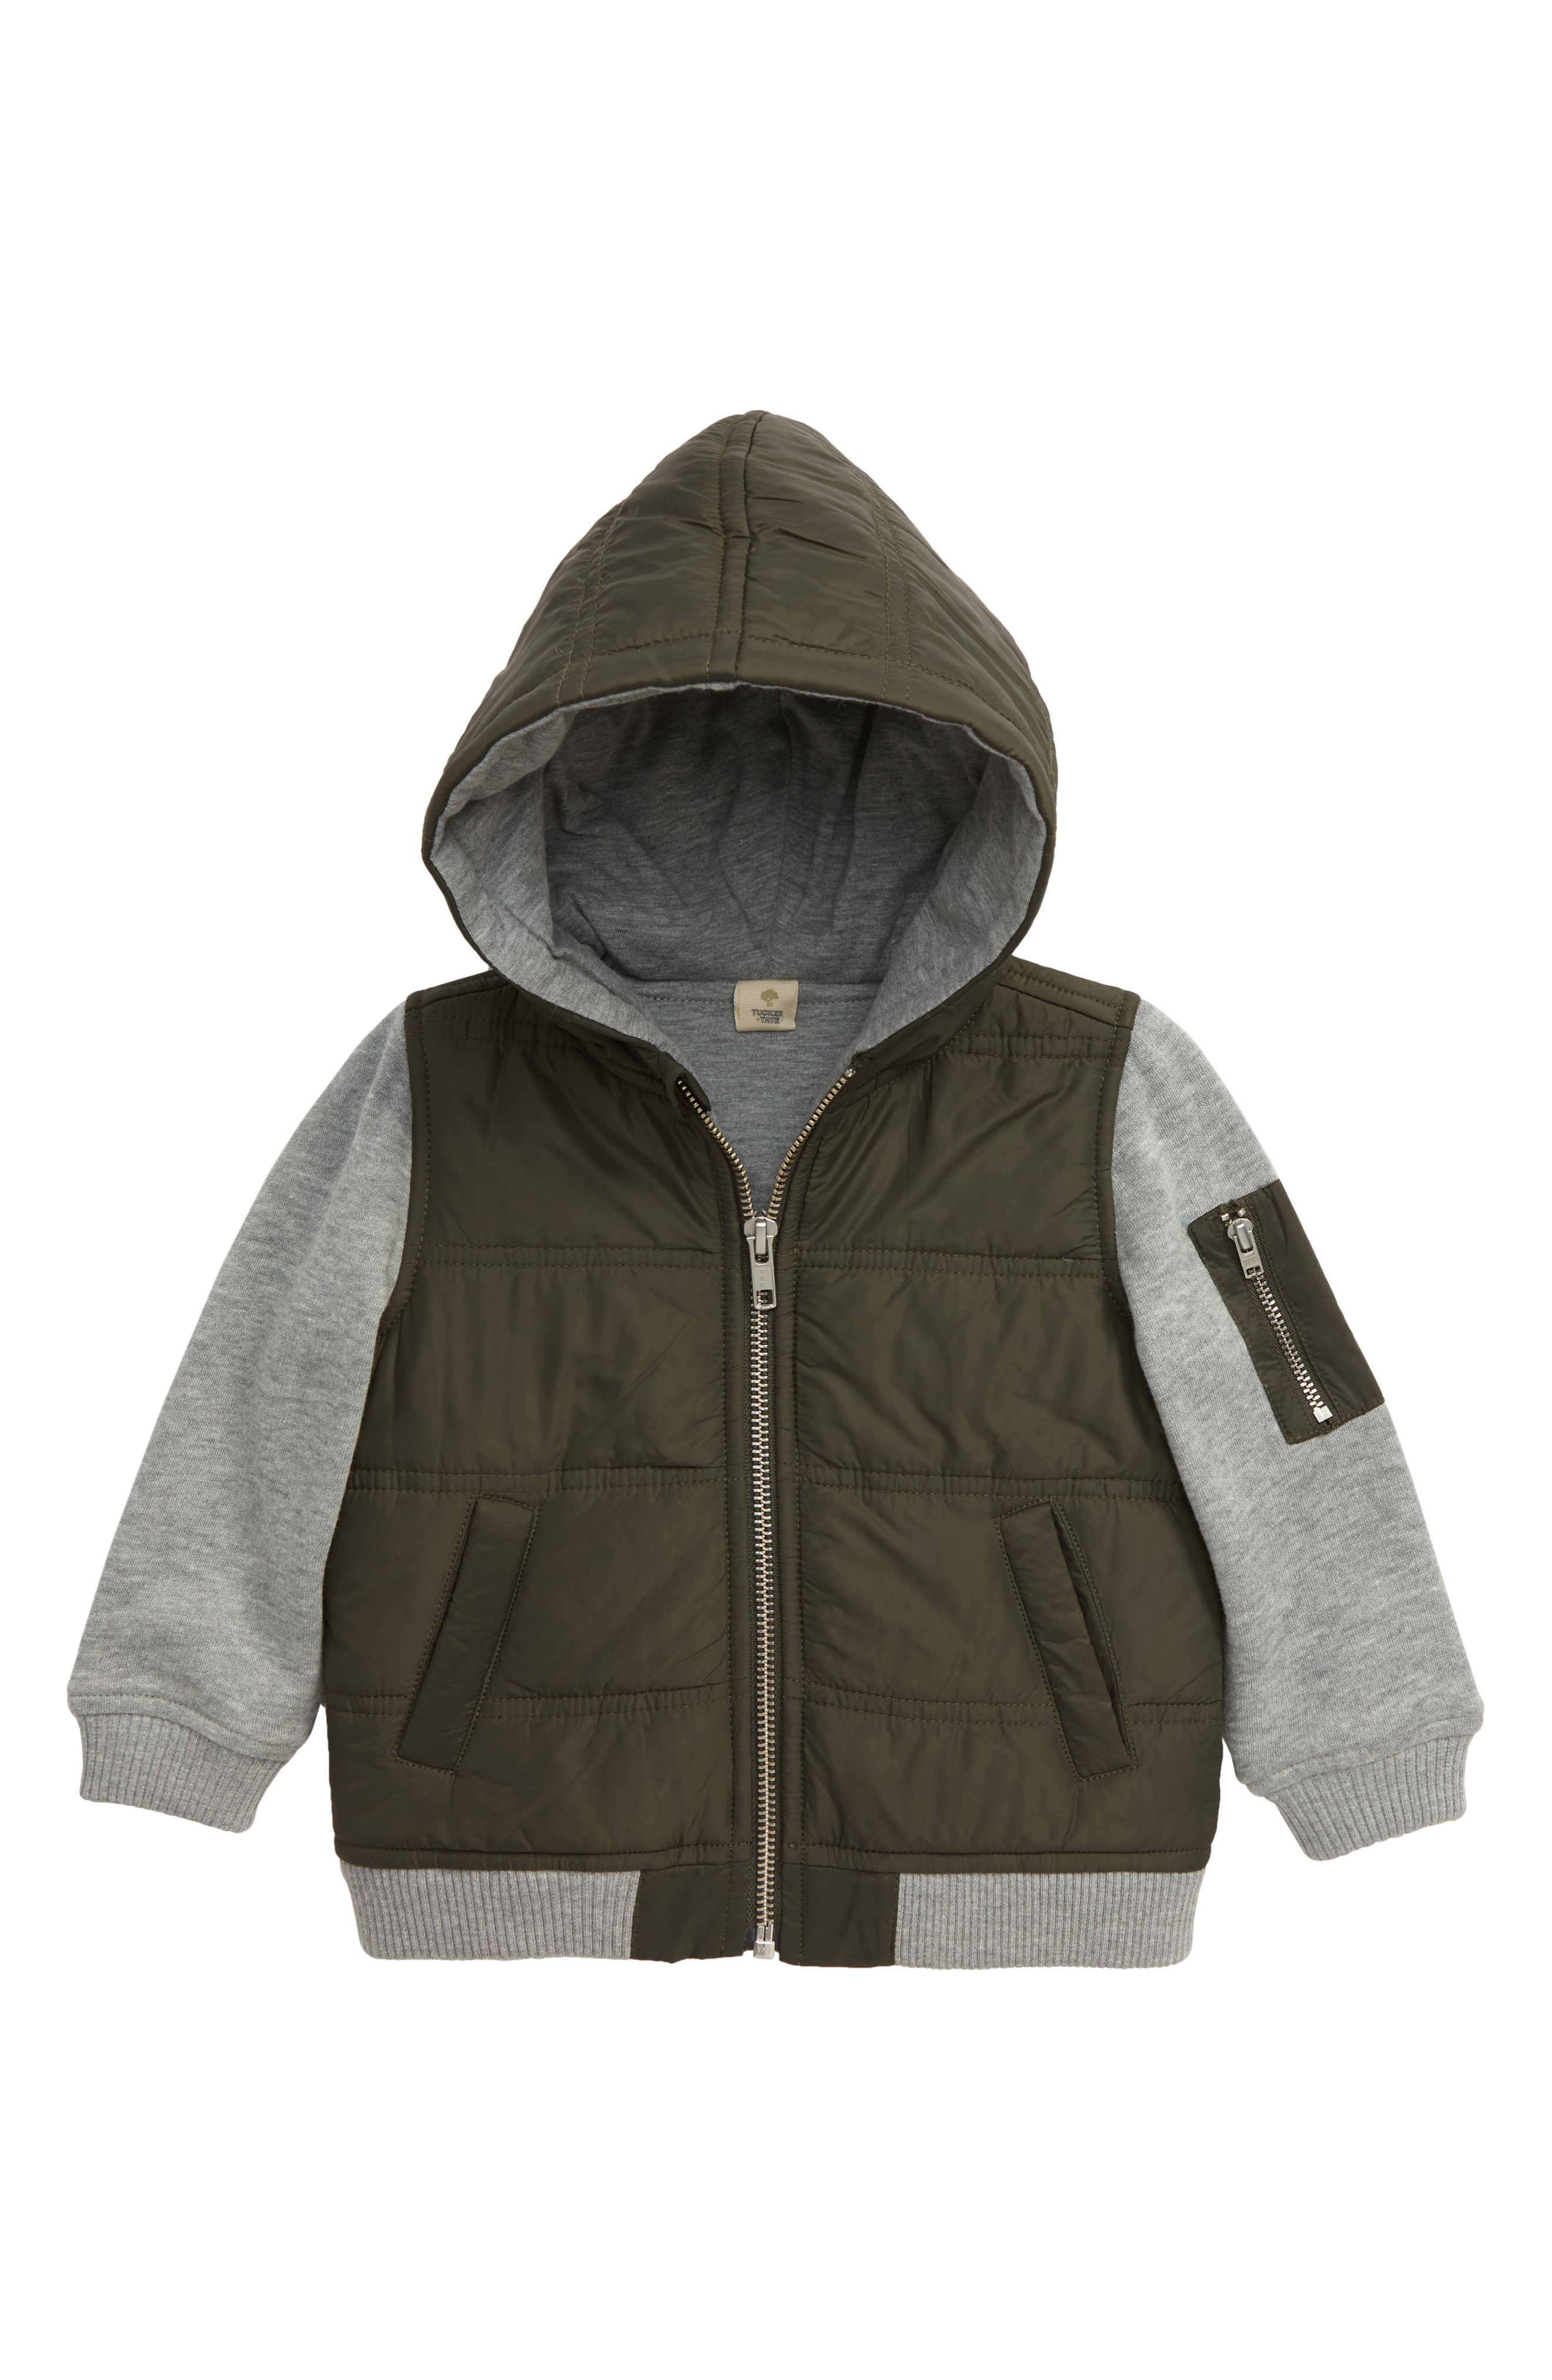 "This{&nbsp;}<a  href=""https://www.nordstrom.com/s/tucker-tate-mountain-crest-nylon-fleece-jacket-baby/5182674?origin=keywordsearch-personalizedsort&breadcrumb=Home%2FAll%20Results&color=olive%20duff"" target=""_blank"" title=""https://www.nordstrom.com/s/tucker-tate-mountain-crest-nylon-fleece-jacket-baby/5182674?origin=keywordsearch-personalizedsort&breadcrumb=Home%2FAll%20Results&color=olive%20duff"">Tucker + Tate, Mountain Crest Nylon Fleece Jacket{&nbsp;}</a>can totally be unisex: $33.90 (after sale $52) (Image: Nordstrom)"